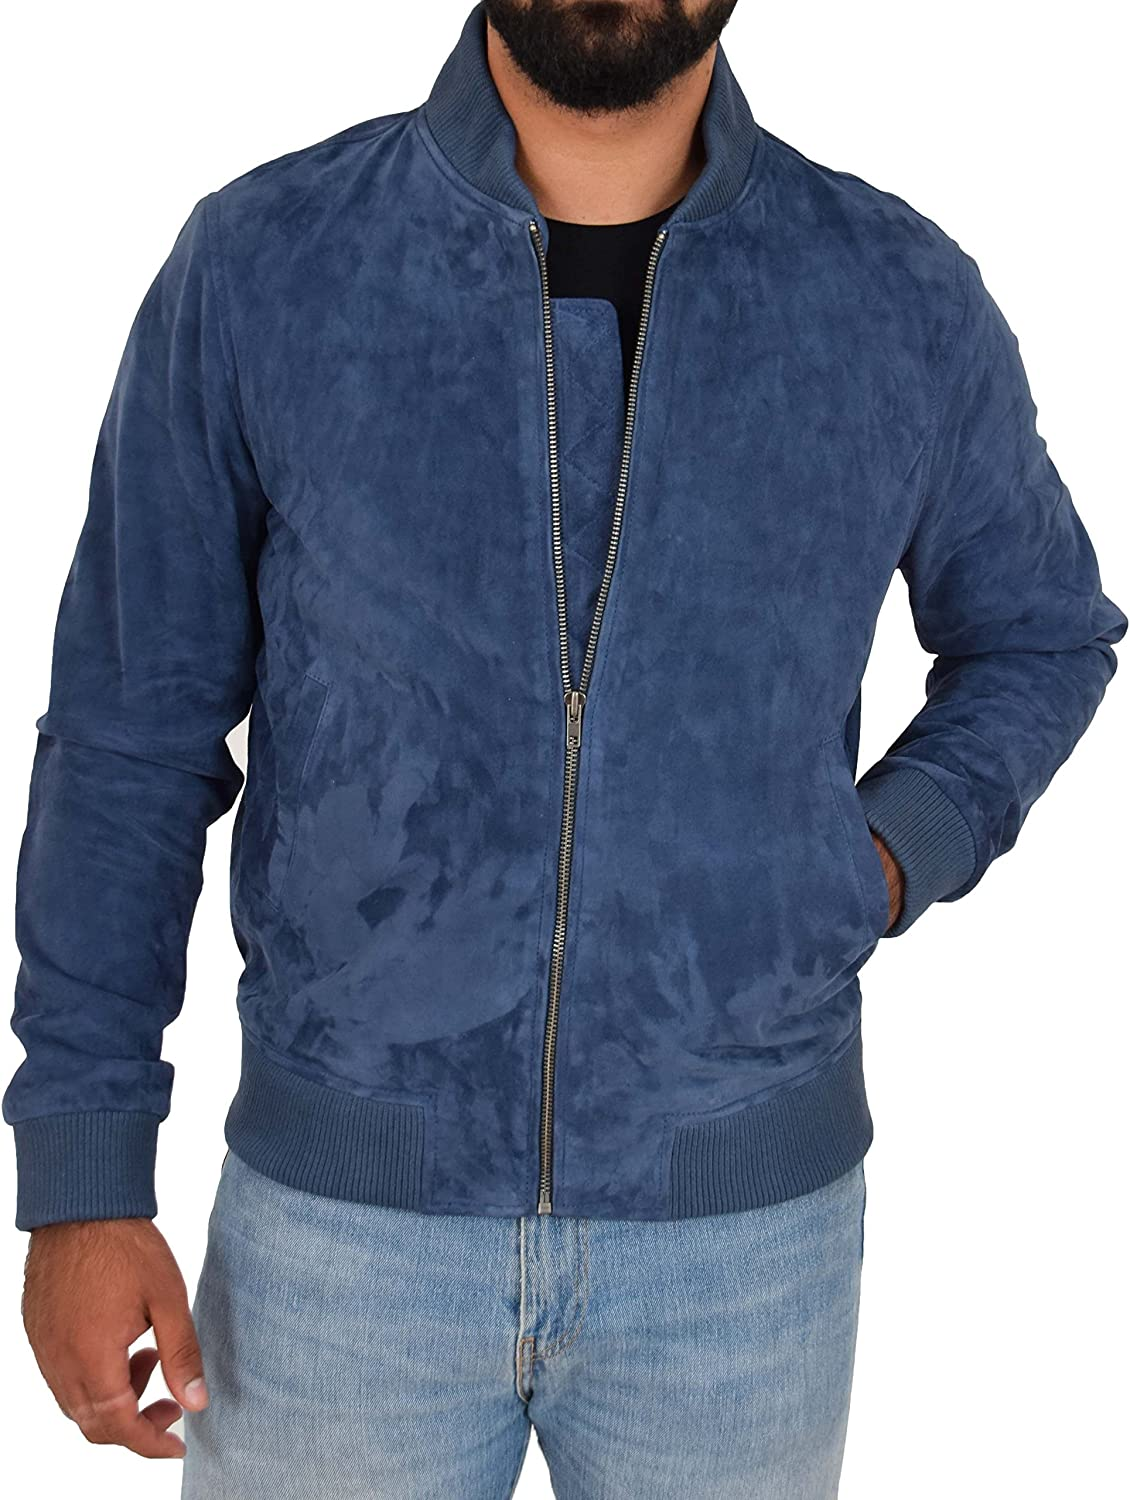 Mens Realsoft Goat Suede Bomber Jacket Blue Slim Fit Varsity Baseball Coat Blur At Amazon Men S Clothing Store